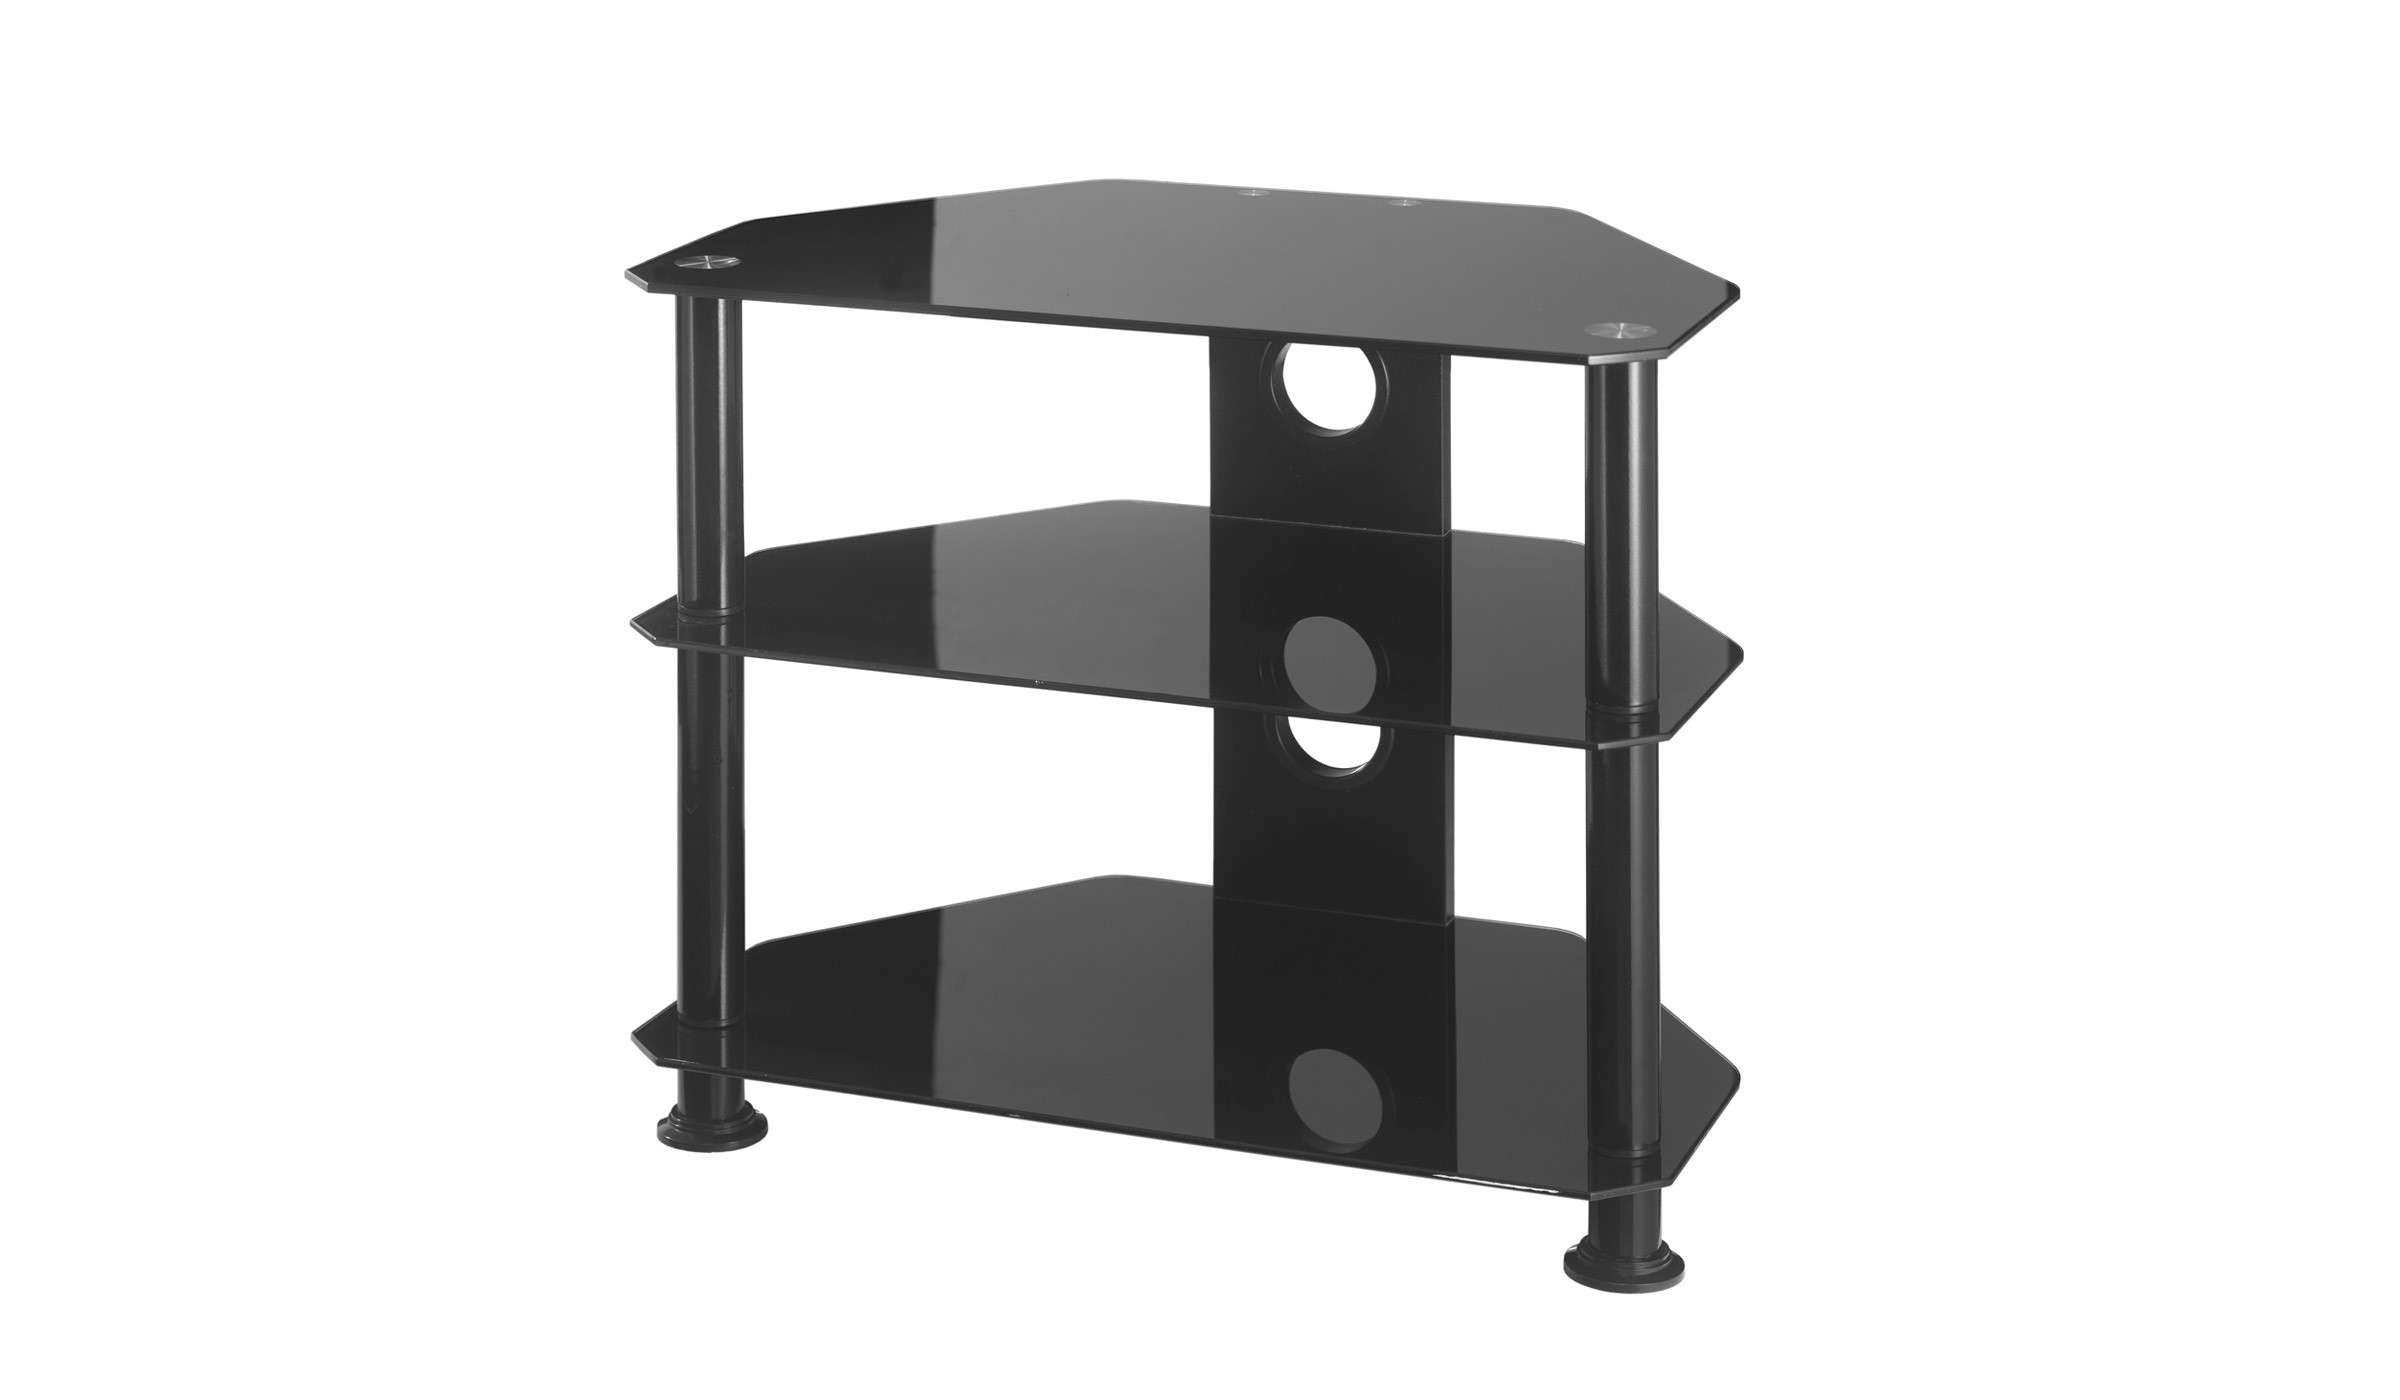 Small Glass Corner Tv Stand Up To 26 Inch Tv | Mmt Db600 In Black Wood Corner Tv Stands (View 11 of 15)